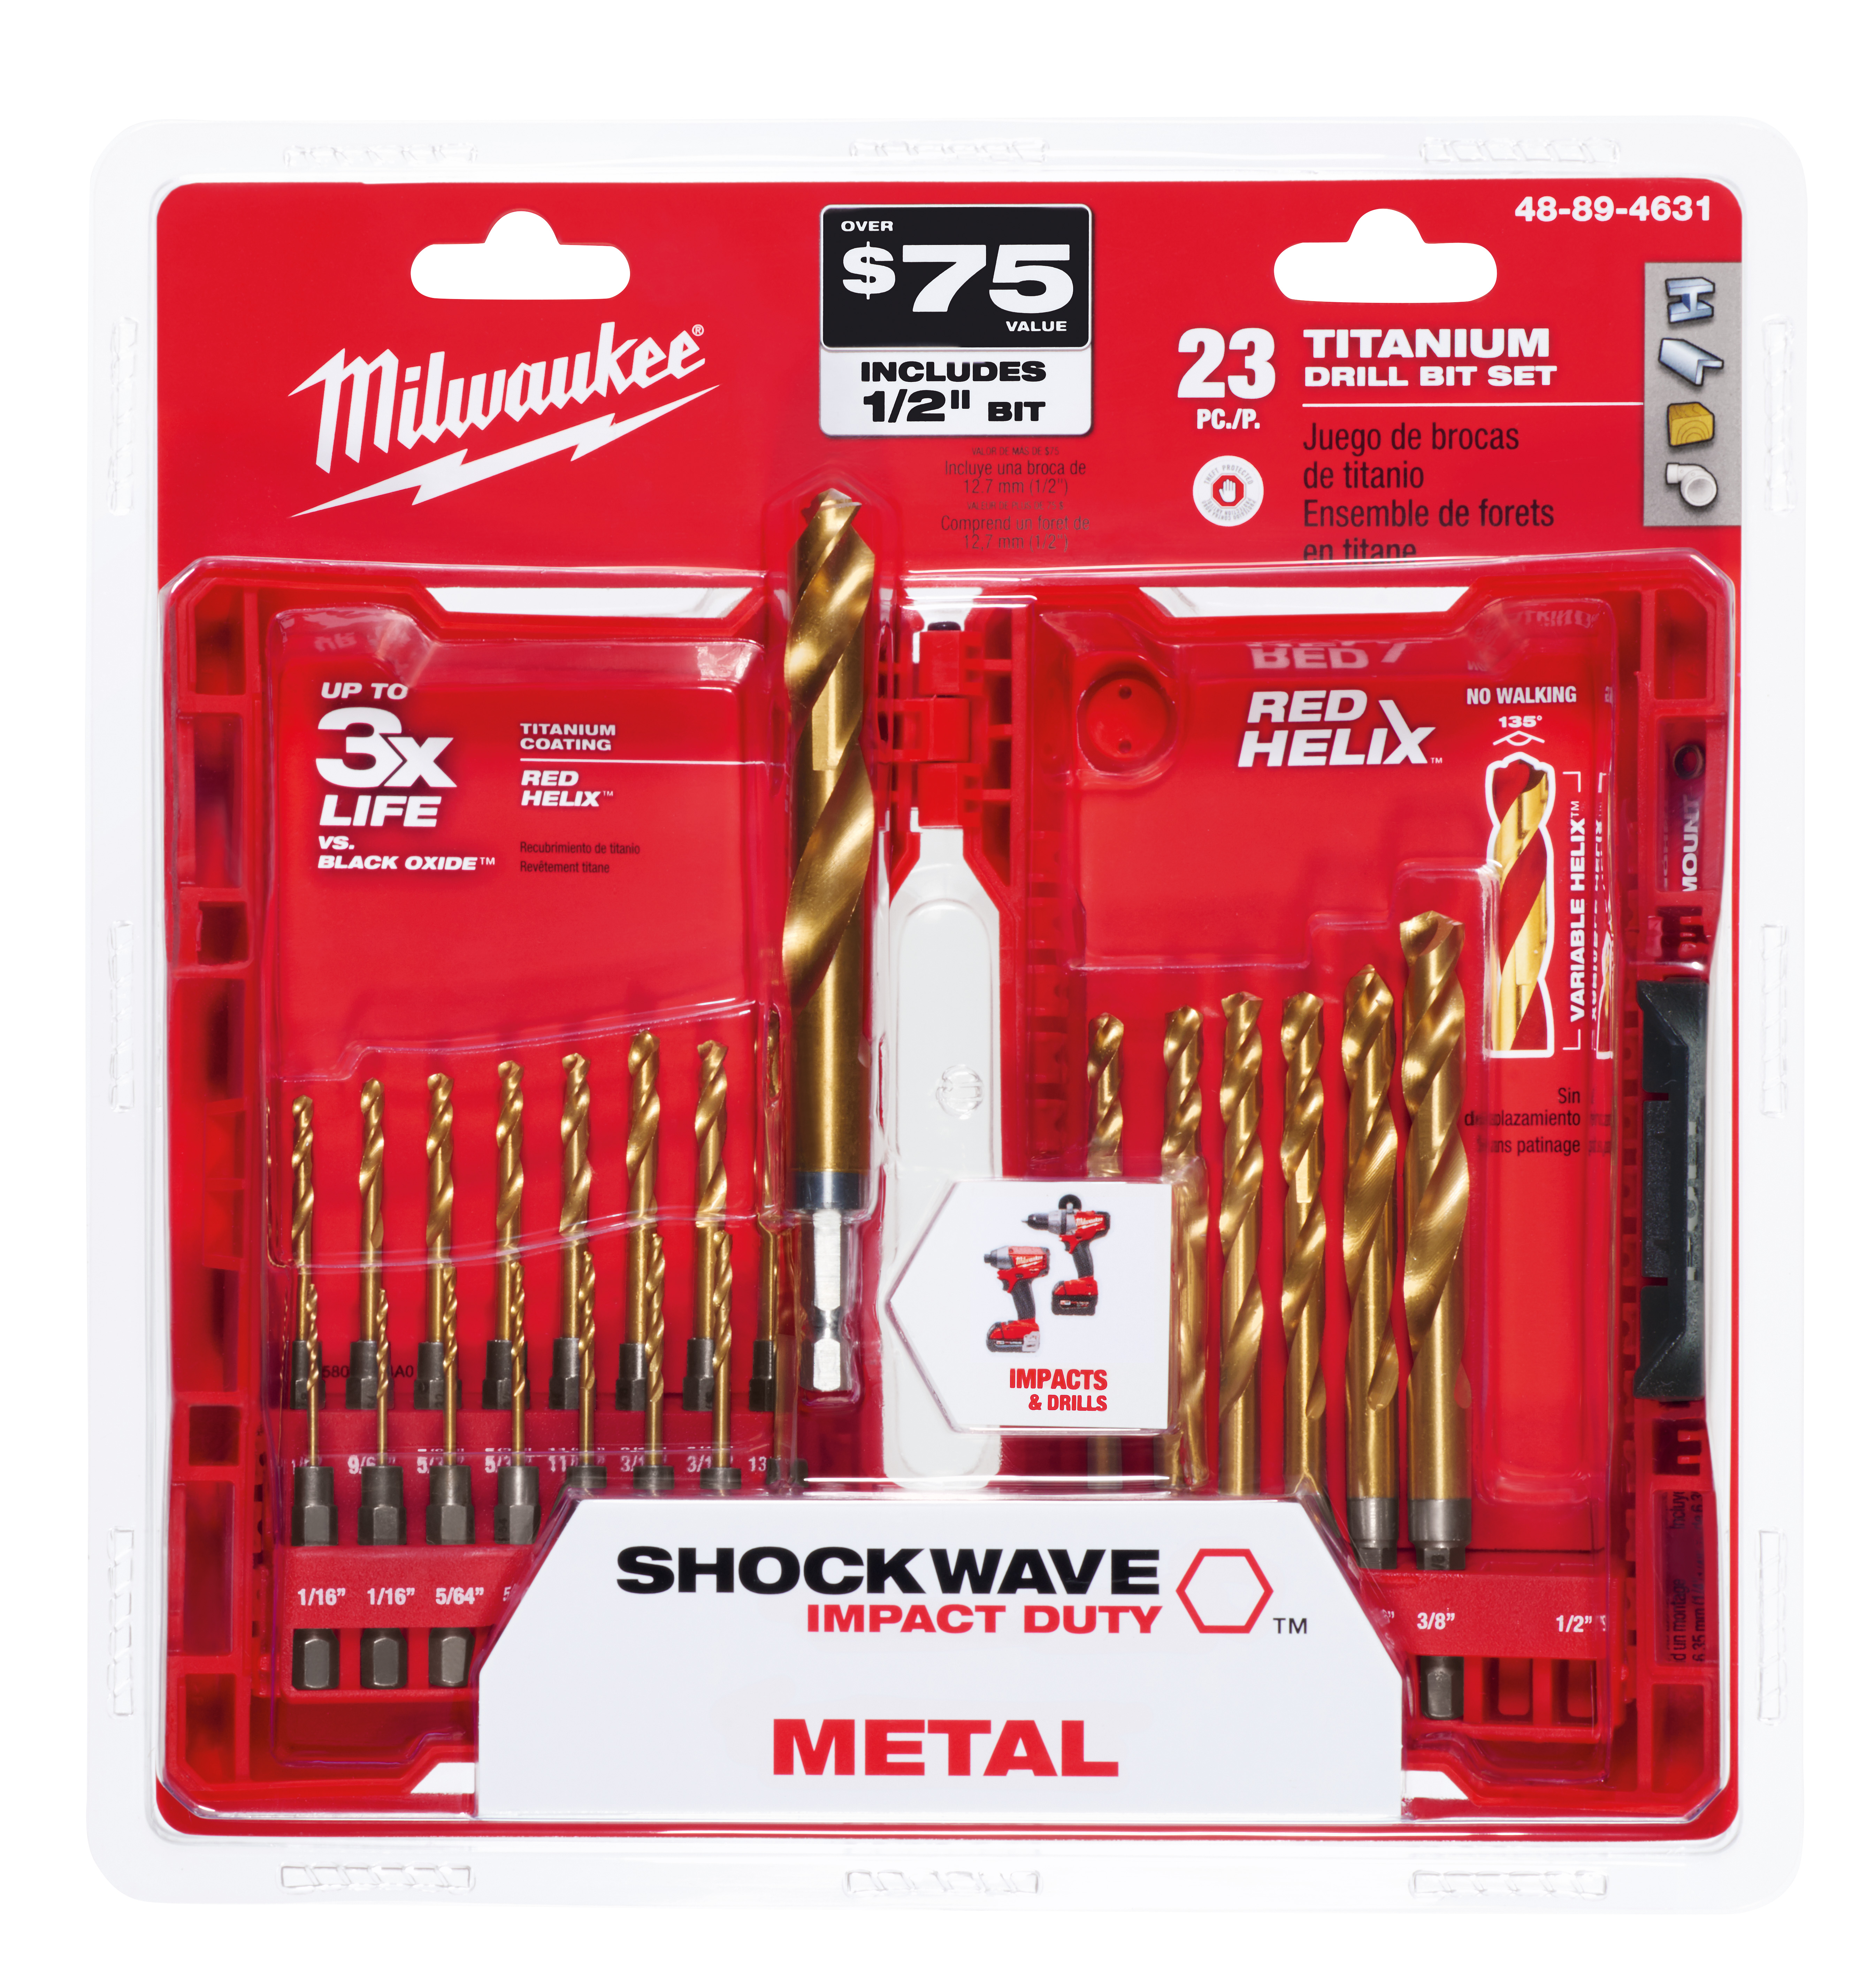 Milwaukee® 48-89-4631 SHOCKWAVE™ RED HELIX™ Impact Duty Drill Bit Kit, 23 Pieces, For Use With All Drill, HSS, Titanium Coated